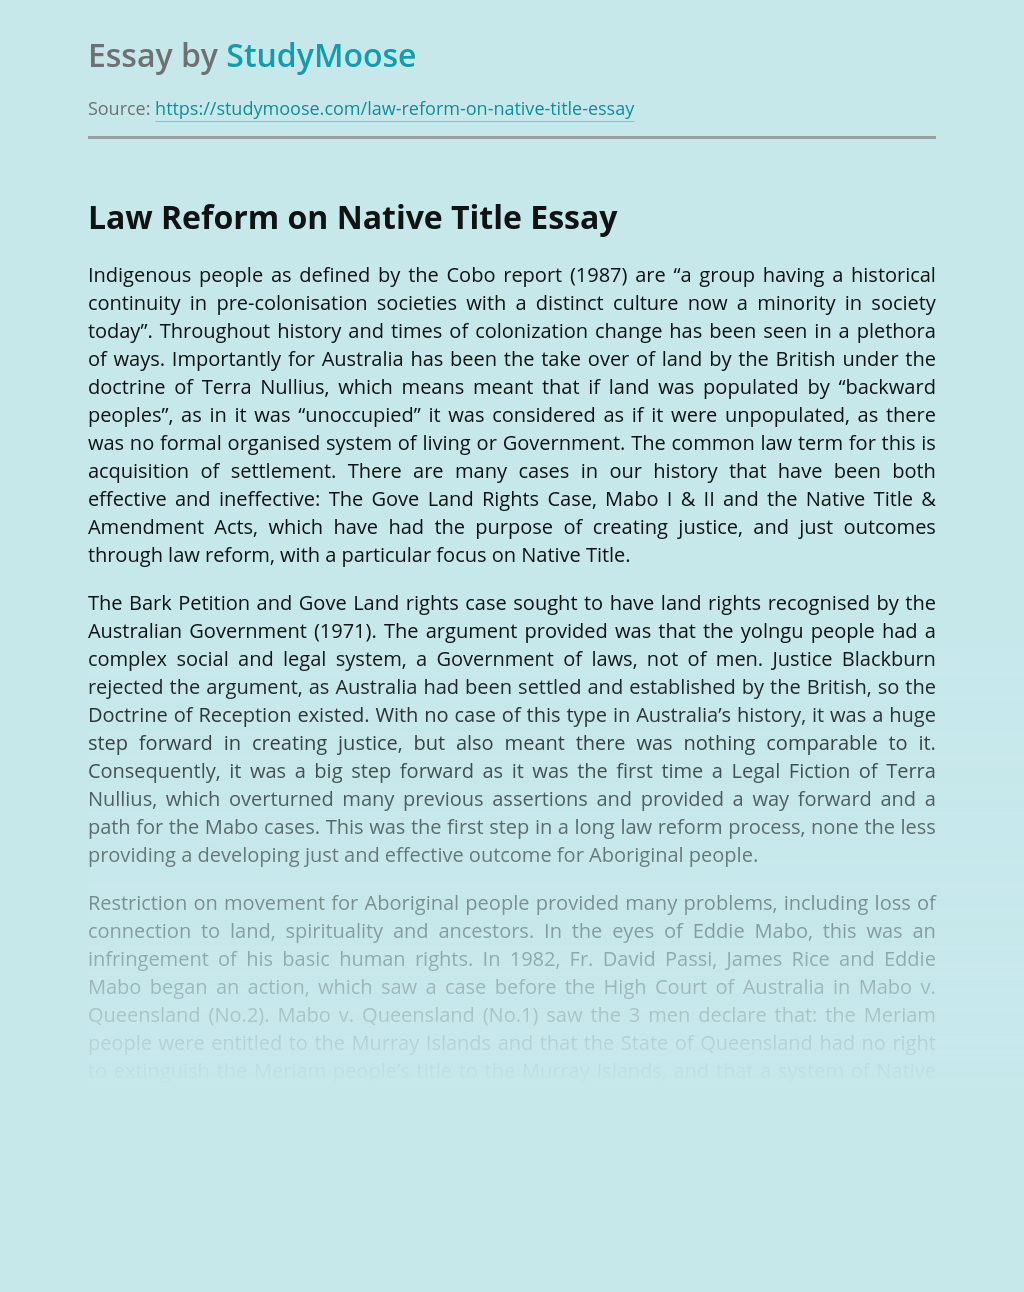 Law Reform on Native Title